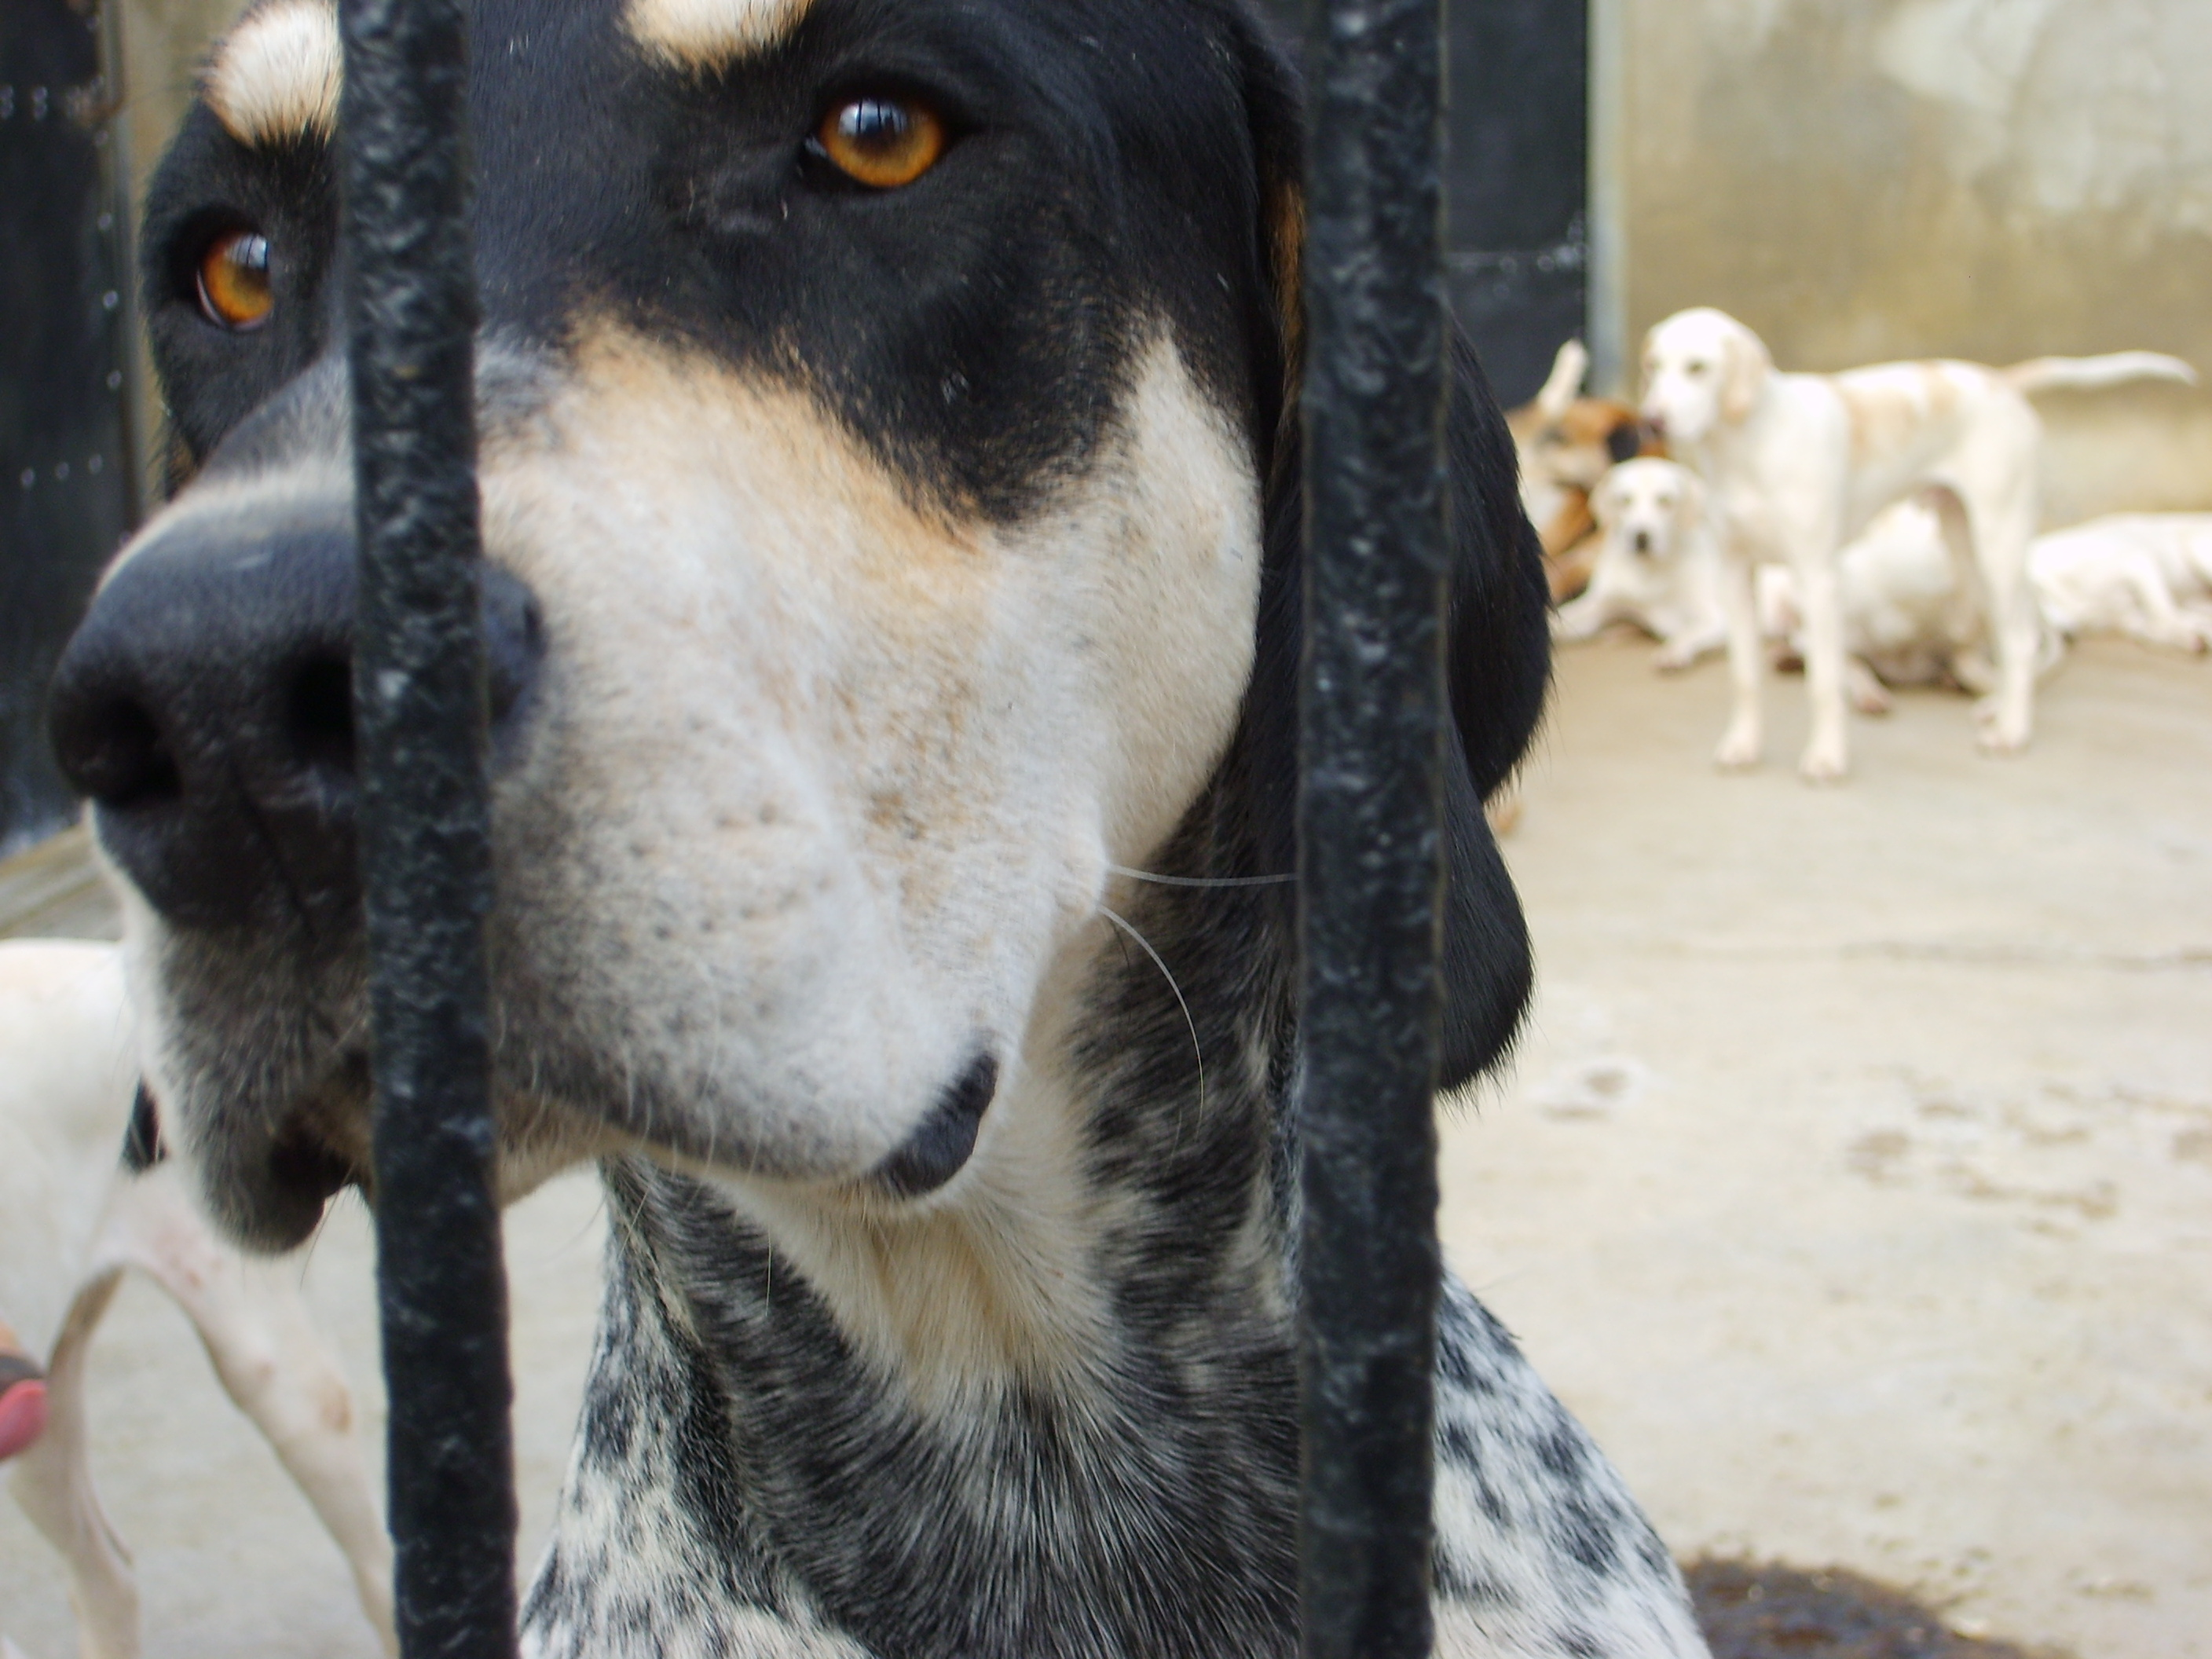 A striking young hound welcomes us to the Thurlow kennels